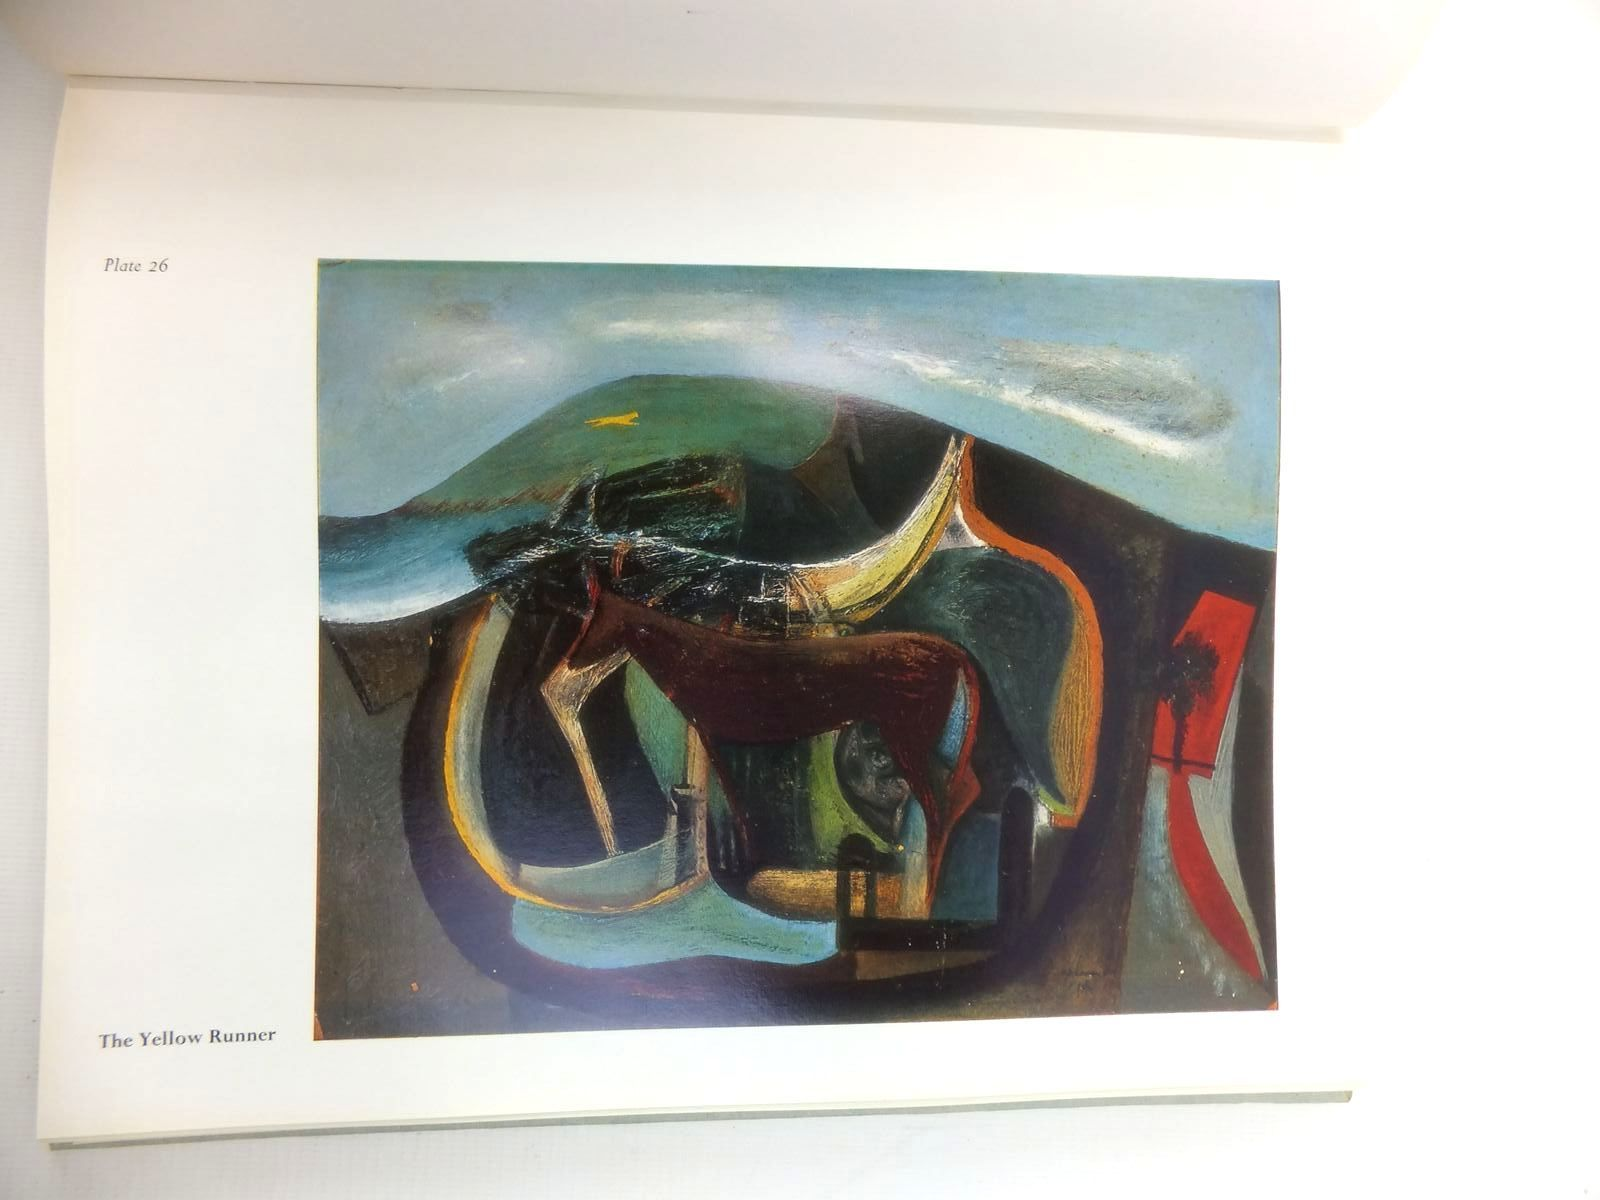 Photo of PETER LANYON HIS PAINTING written by Causey, Andrew Gabo, Naum published by Aidan Ellis Publishing Limited (STOCK CODE: 2123413)  for sale by Stella & Rose's Books